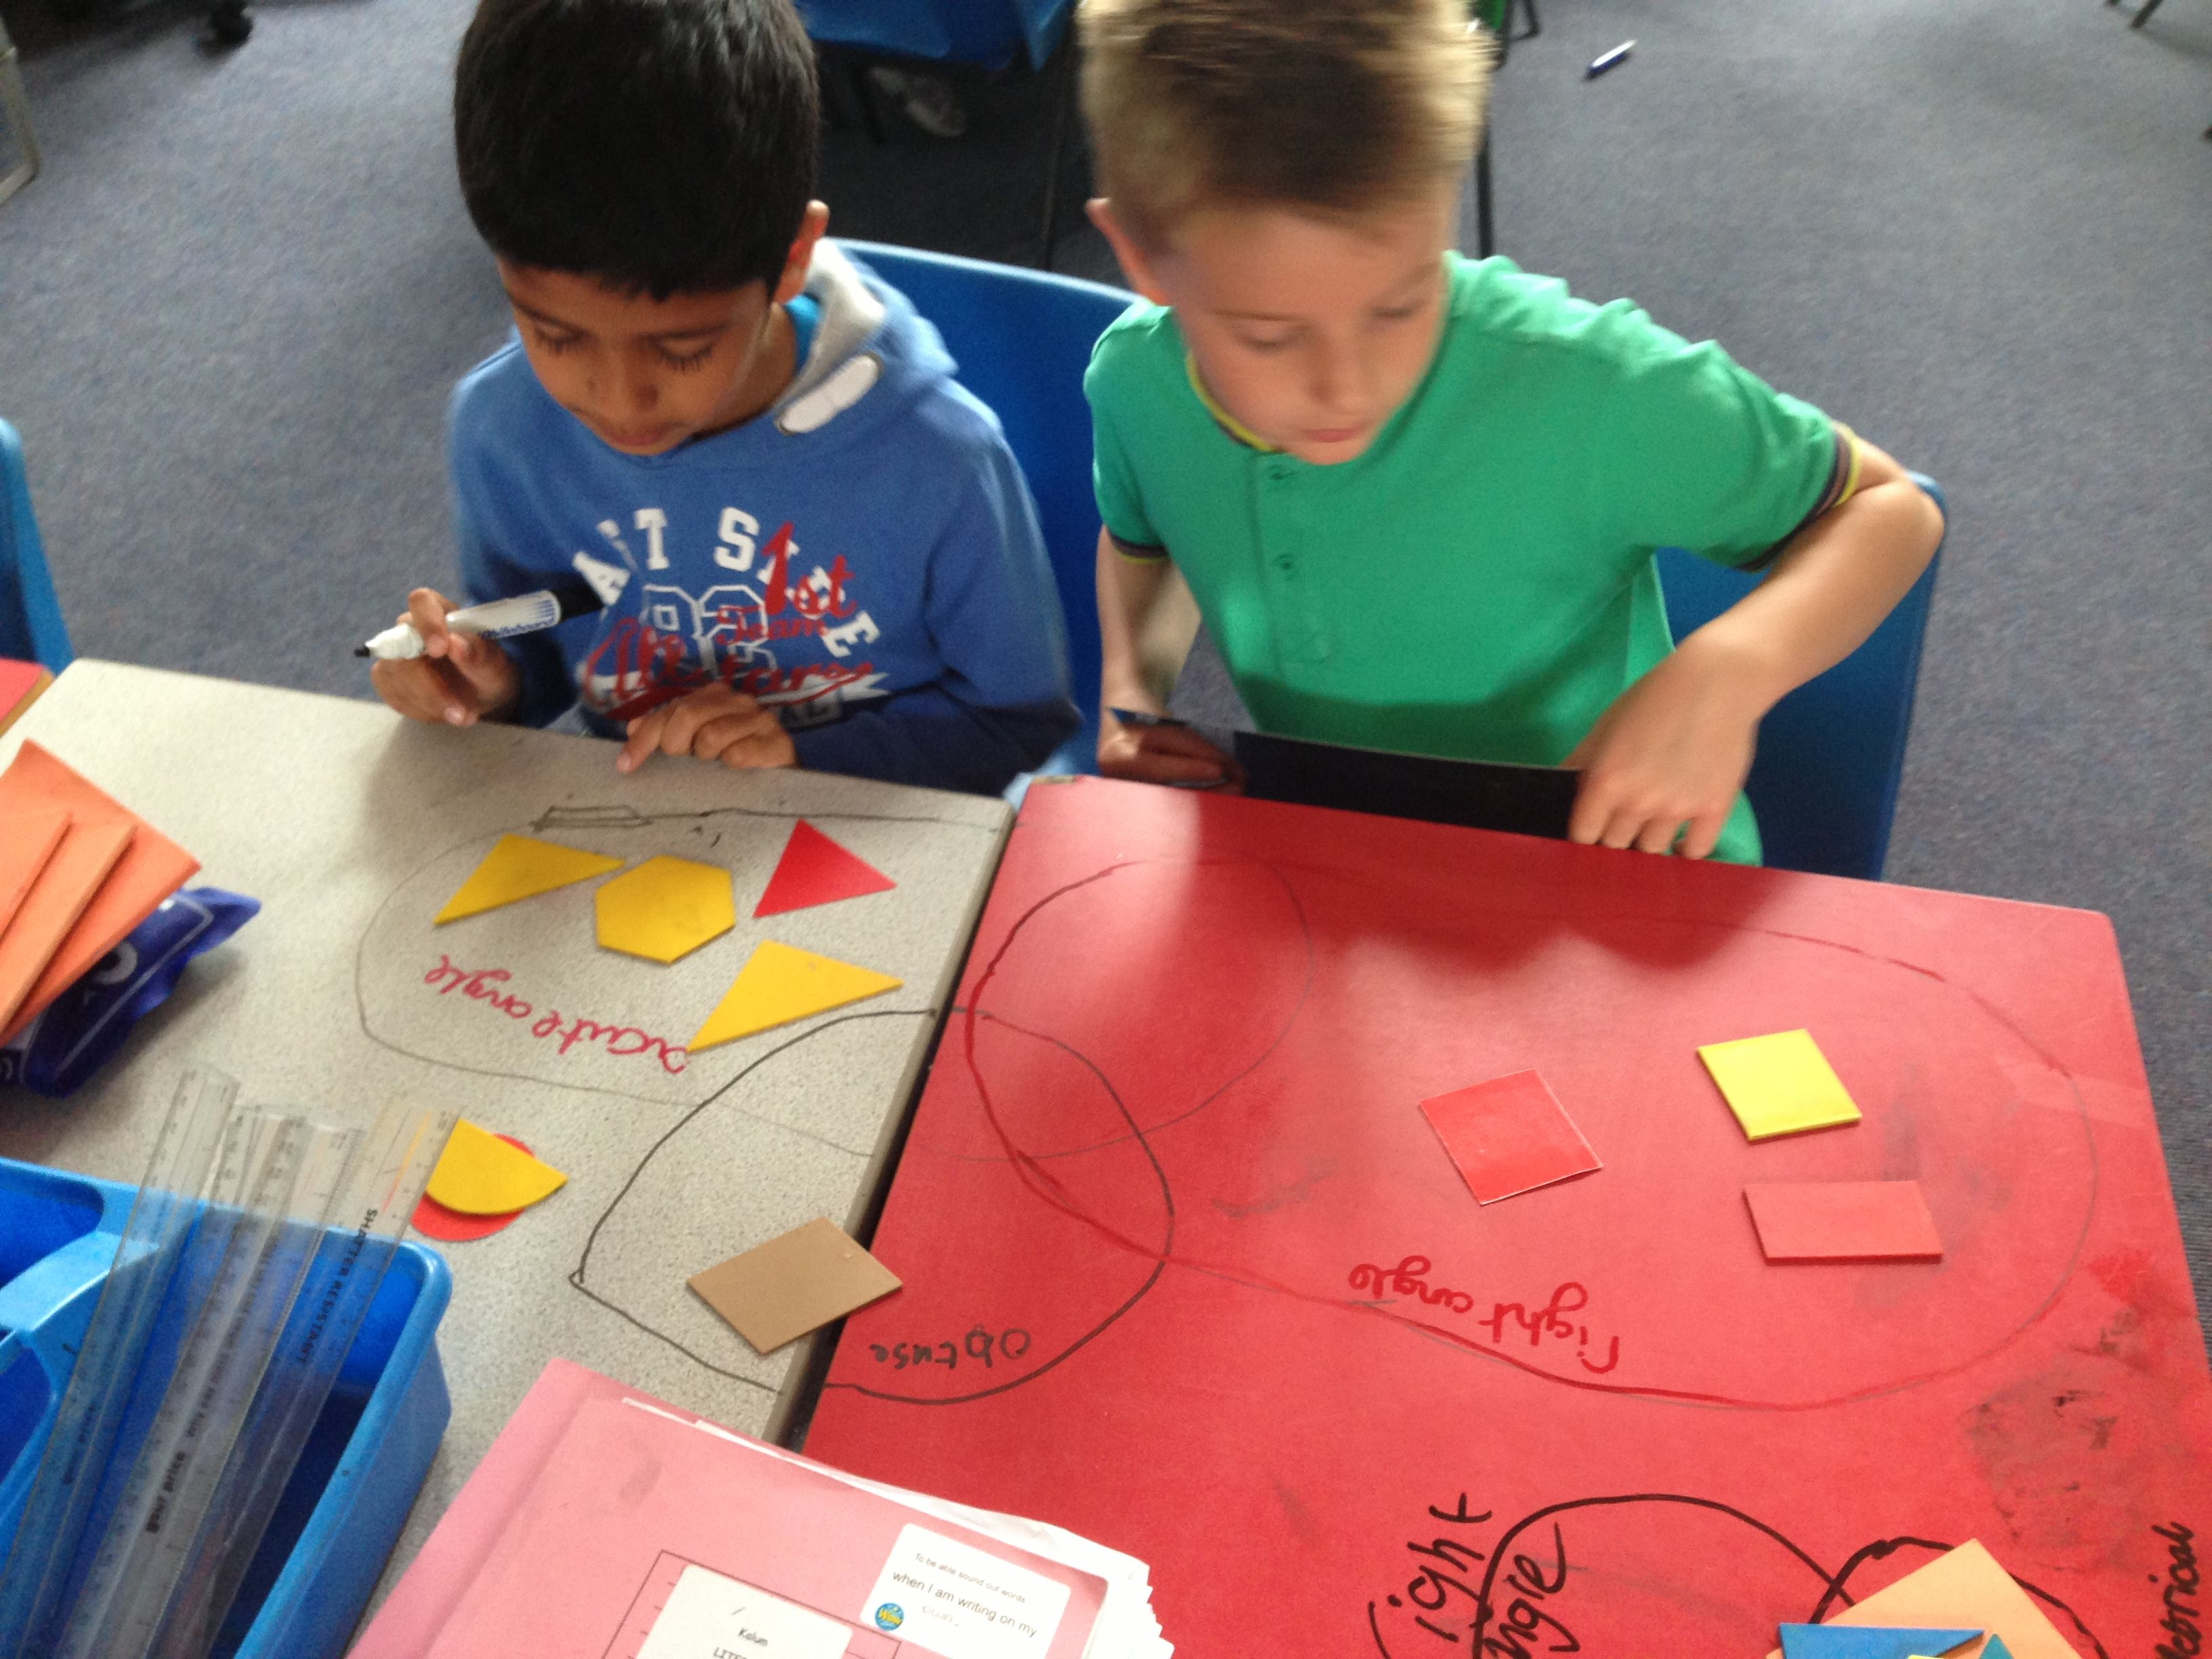 Wrote On Tables Lesson Sorting And Classifying Shapes Far